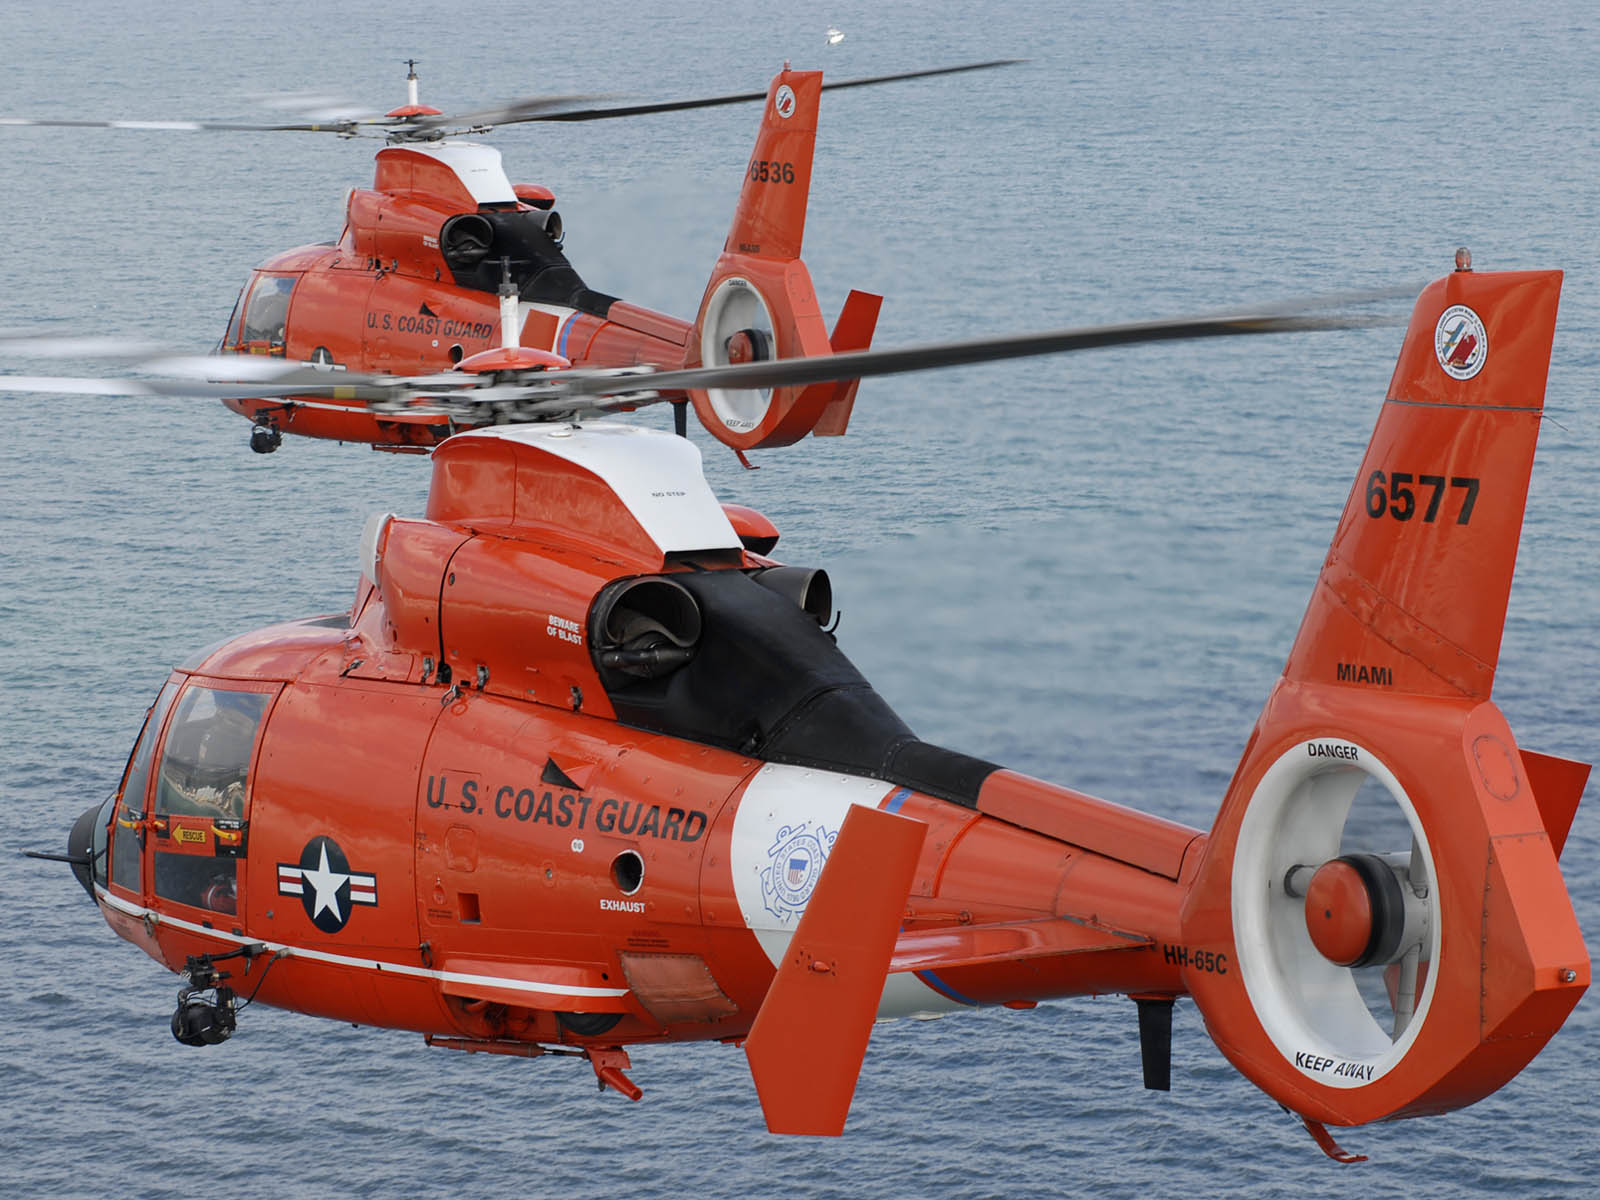 hh 65 dolphin coast guard helicopter with Hh 65 Dolphin Us Coast Guard Helicopter on 131748723045 further Hh 65 Dolphin Us Coast Guard Helicopter besides Watch in addition Us Coast Guard Hh 65c Dolphin Helicopter likewise Row.